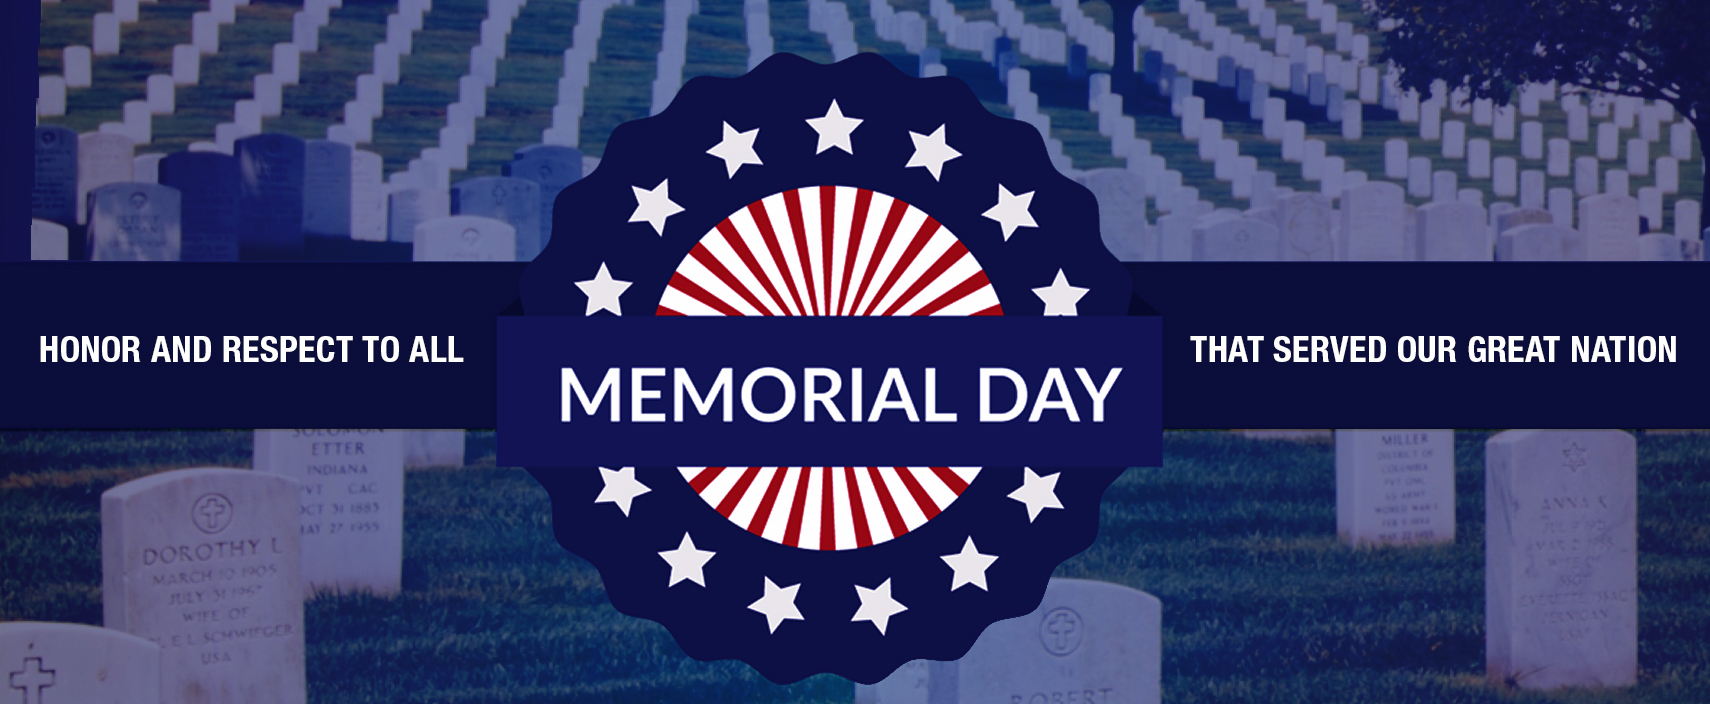 showplumbing-memorial-day-banner